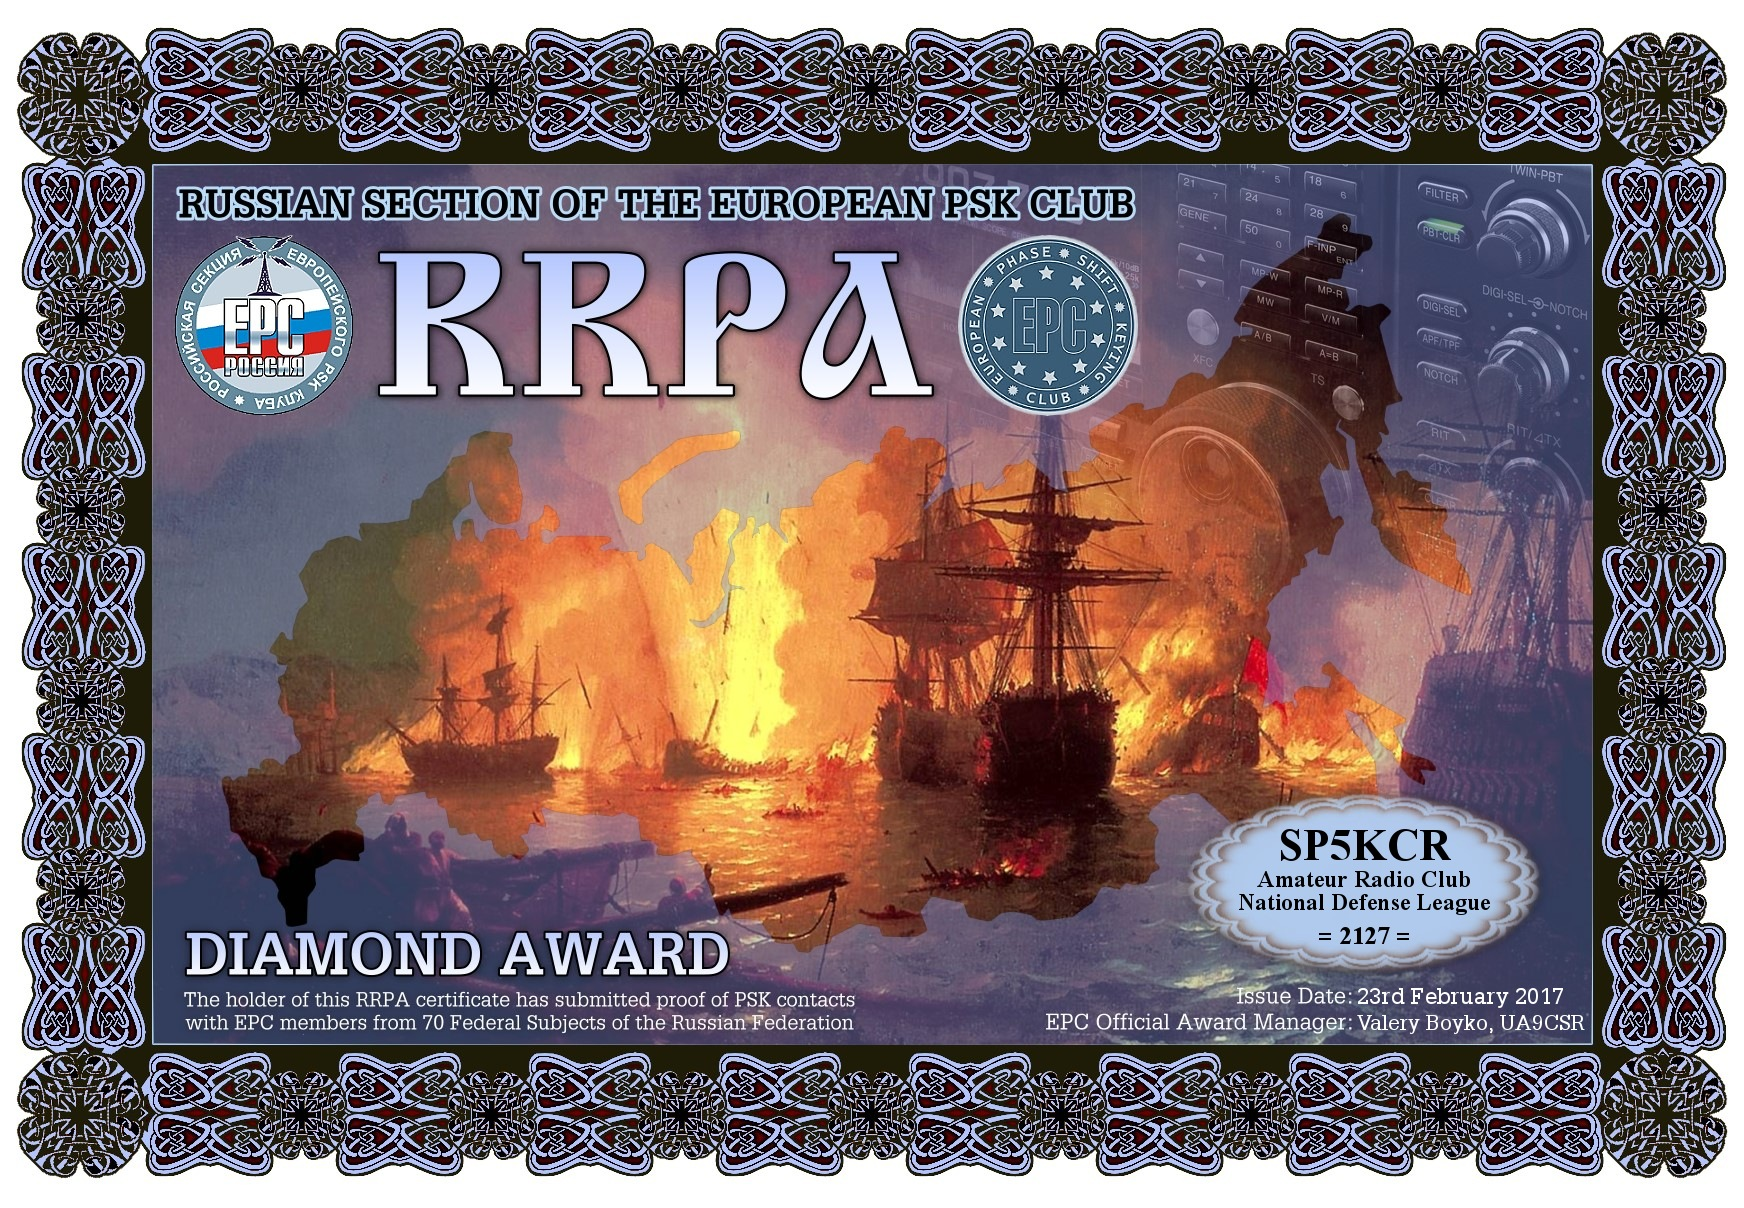 SP5KCR RRPA DIAMOND